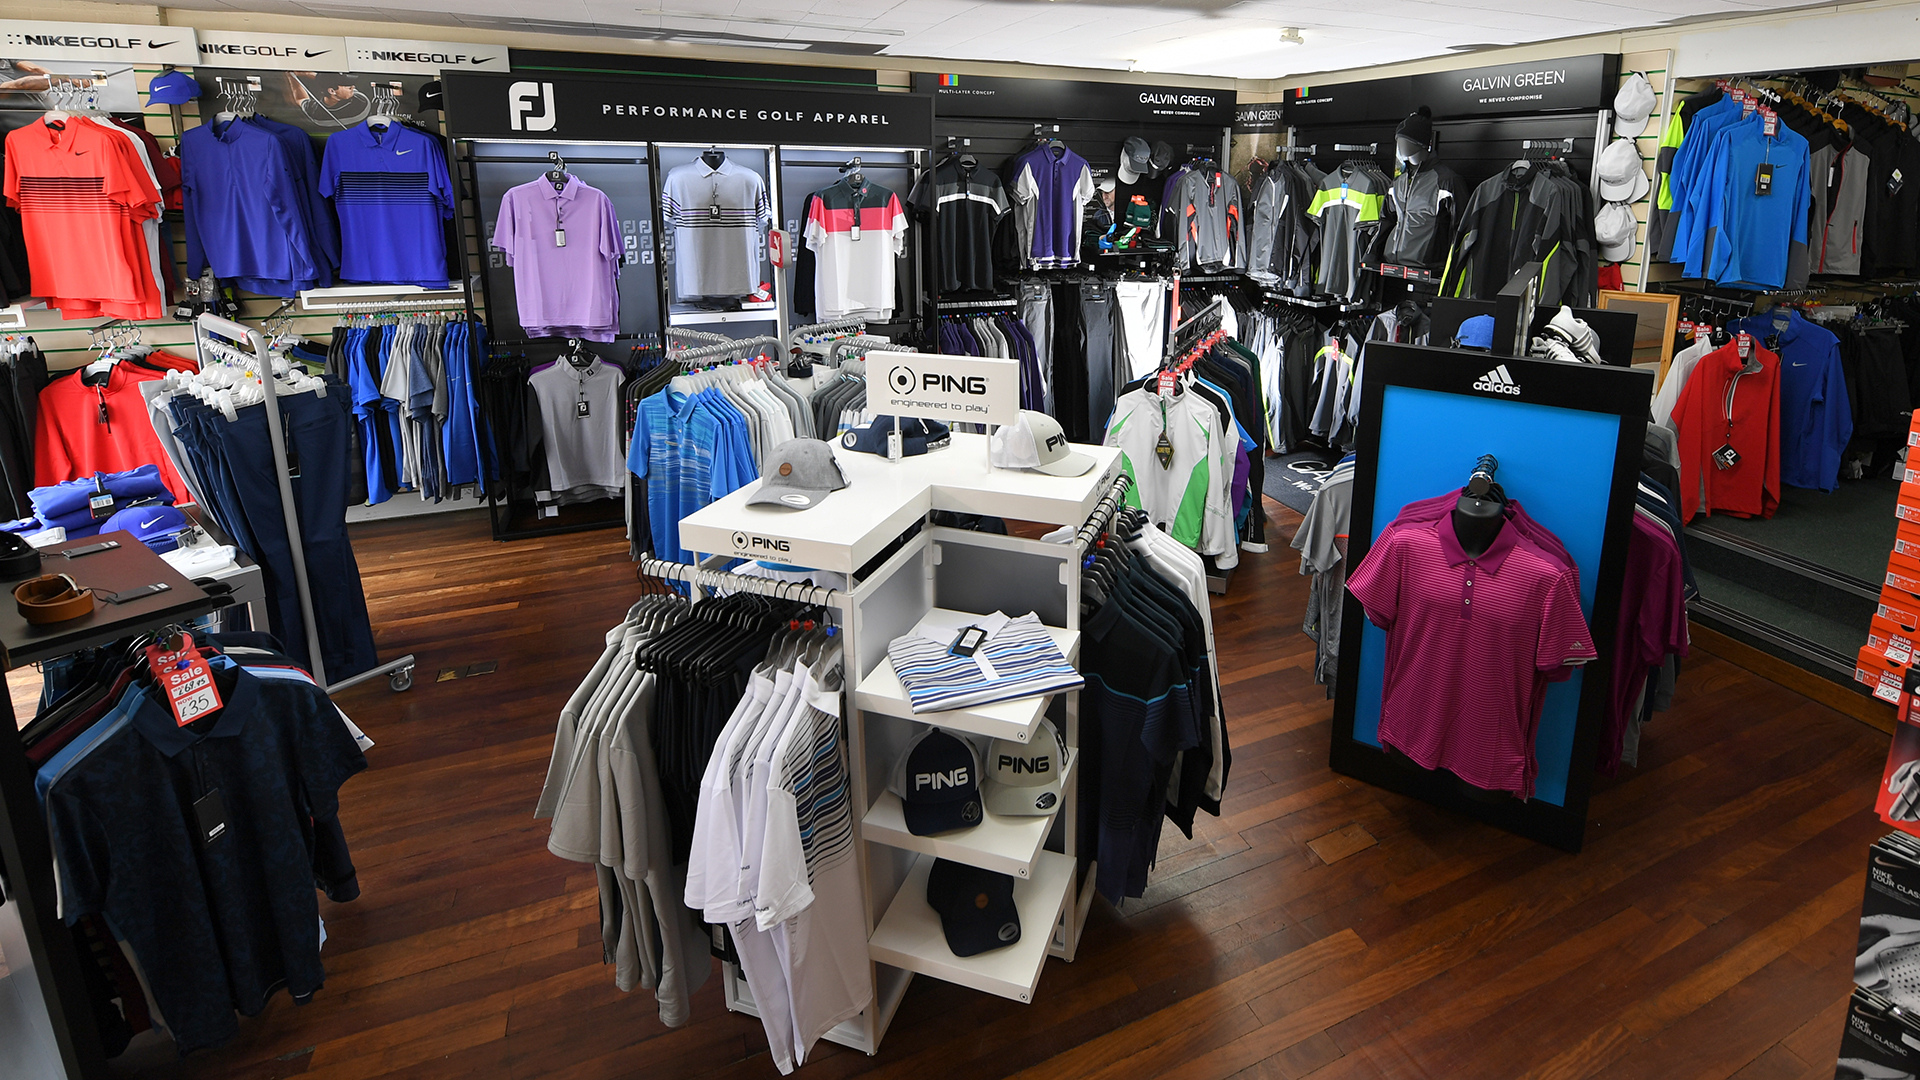 interior of Barrack Road shop showing golf clothing and accessories